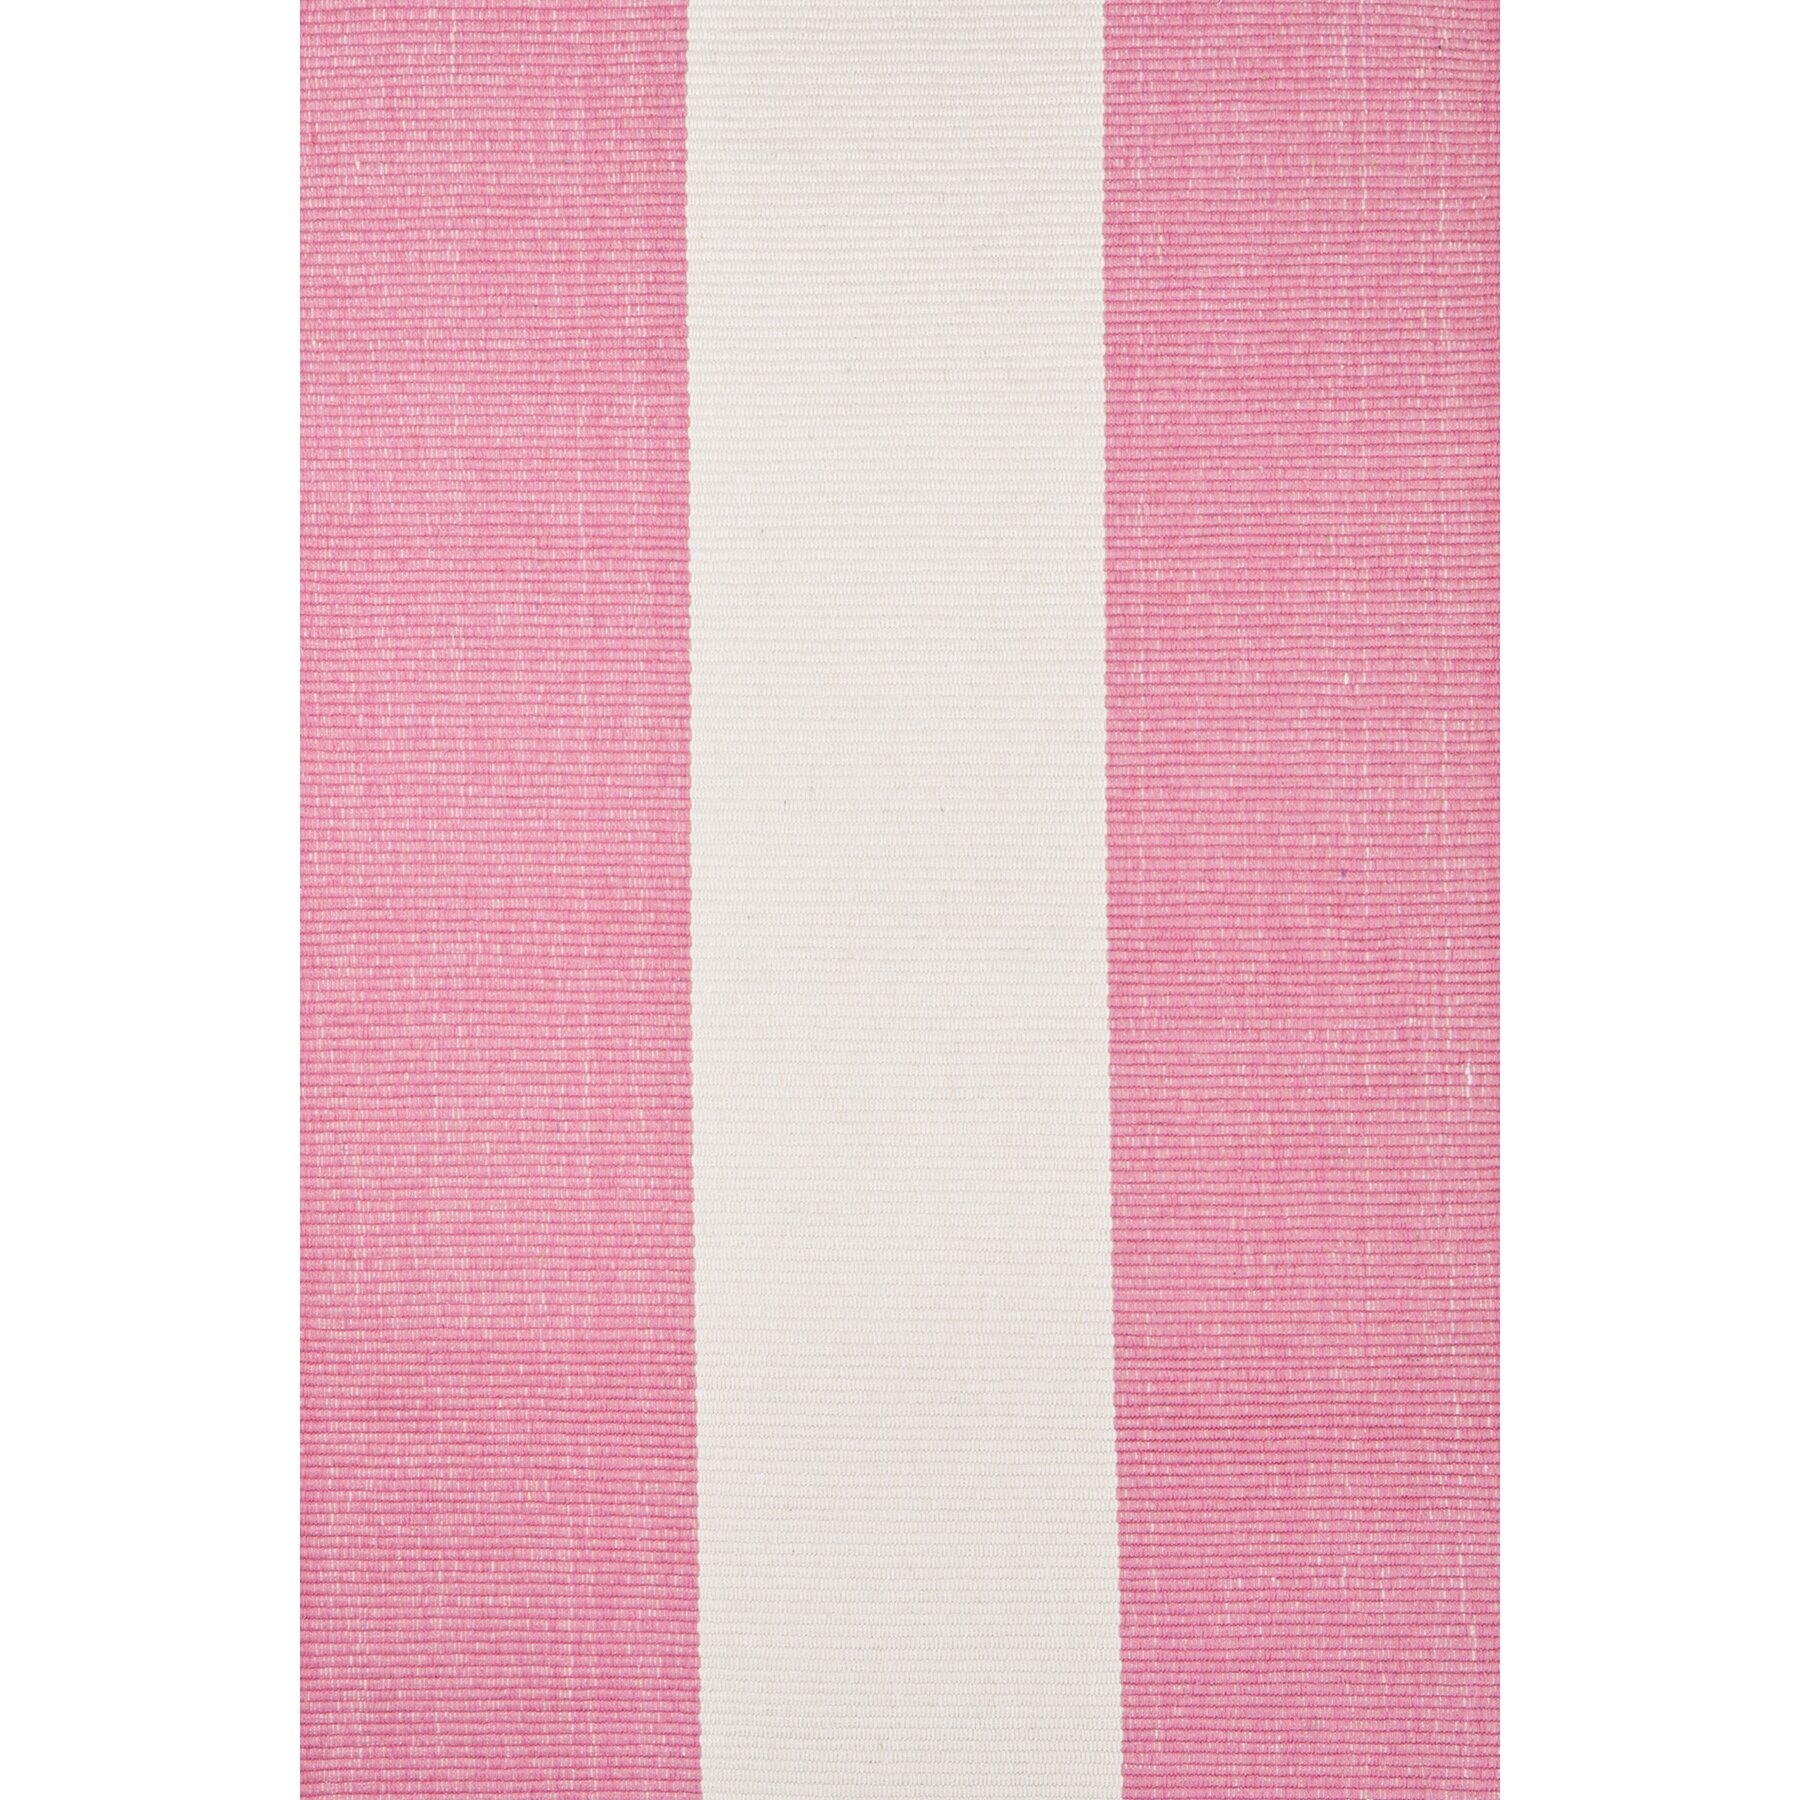 Dash and Albert Rugs Hand Woven Pink Area Rug & Reviews ...